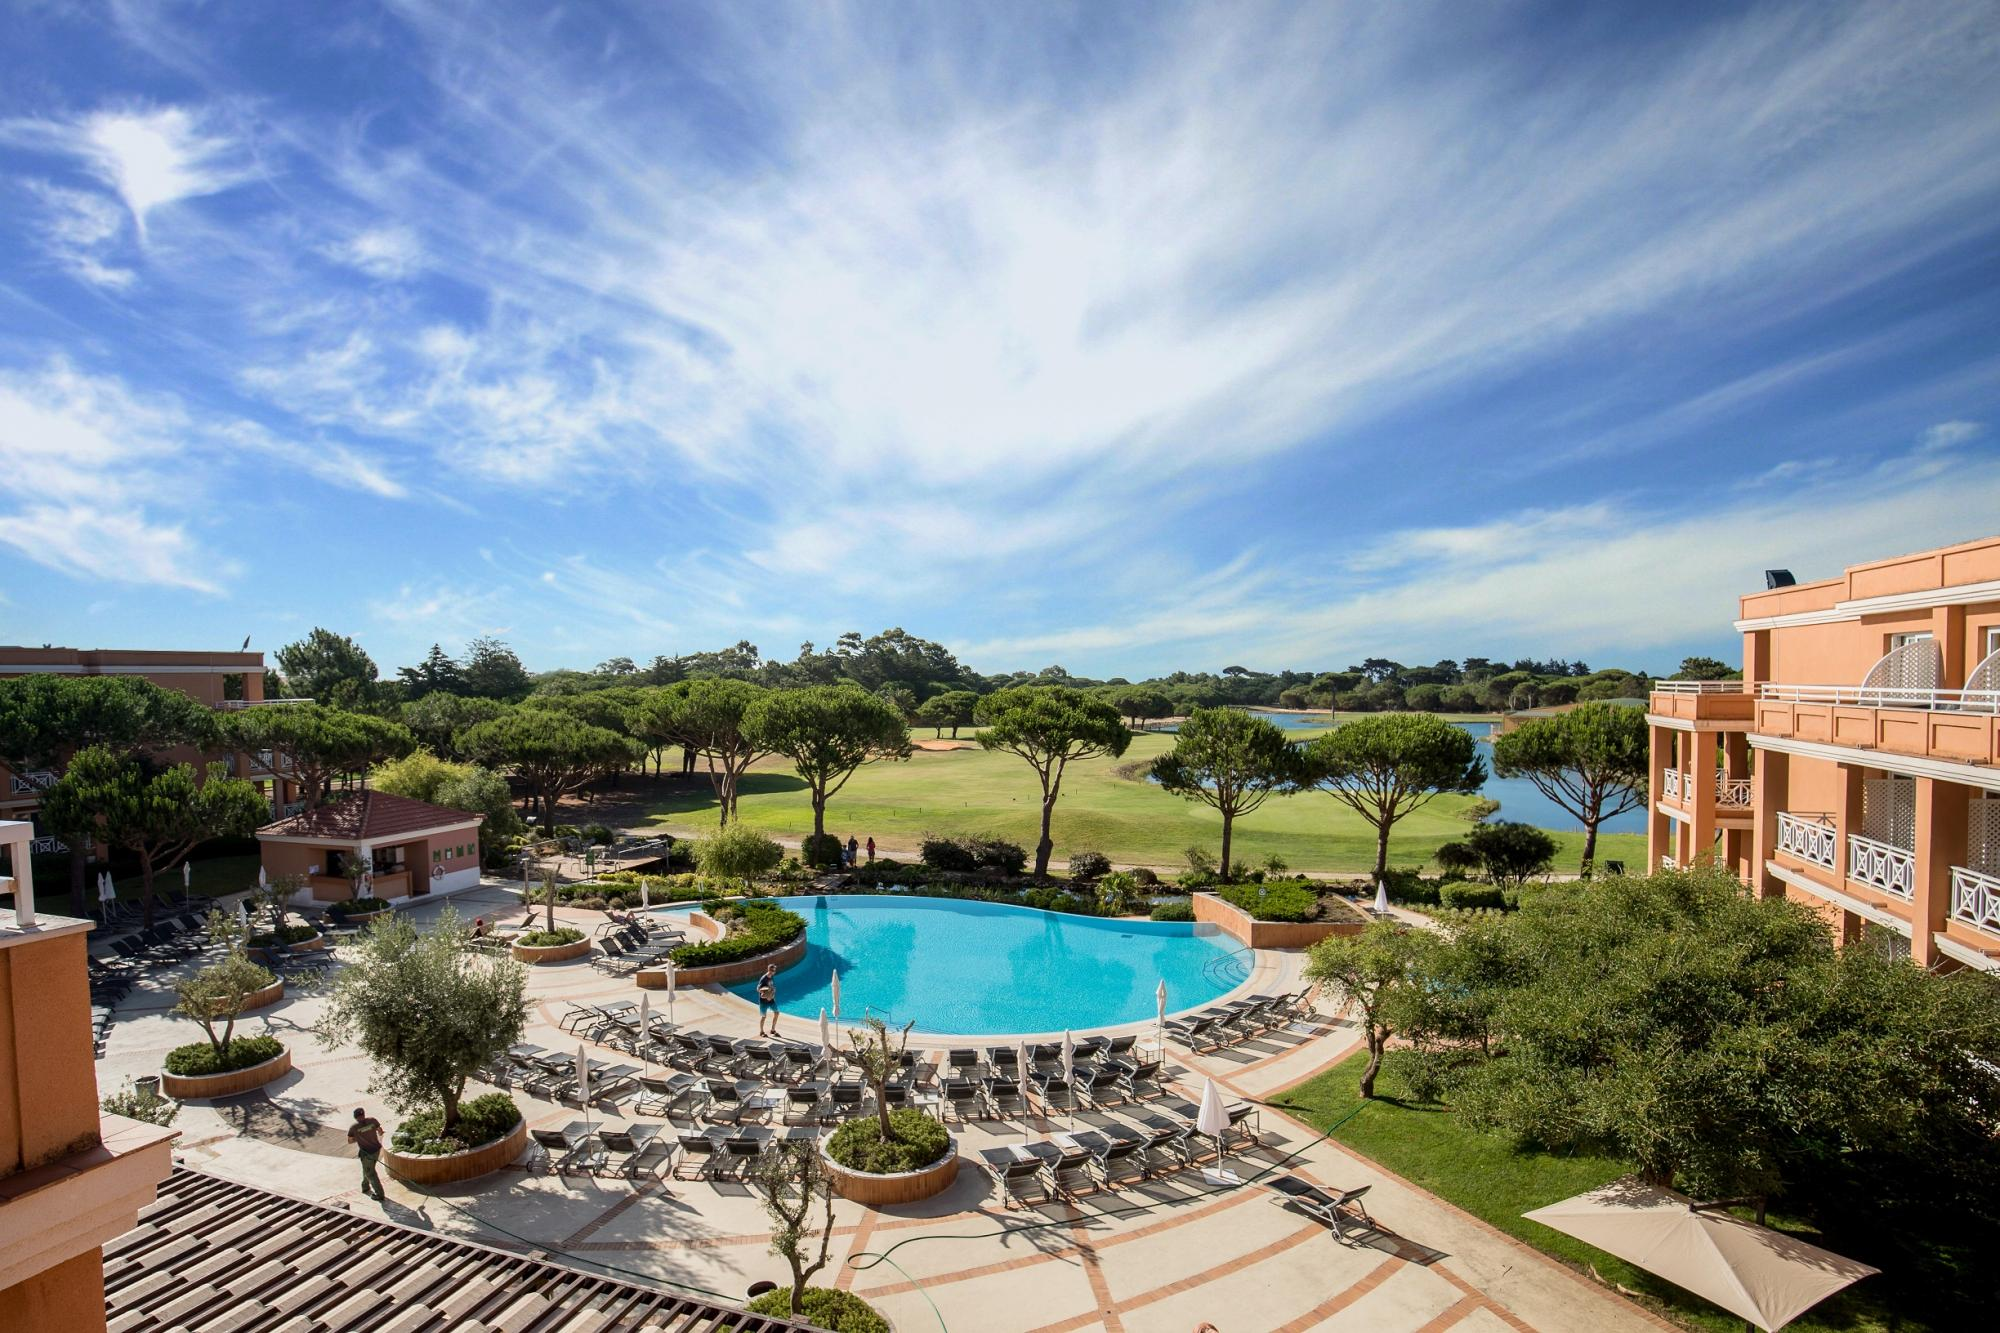 The Quinta da Marinha Resort Hotel's impressive hotel situated in magnificent Lisbon.